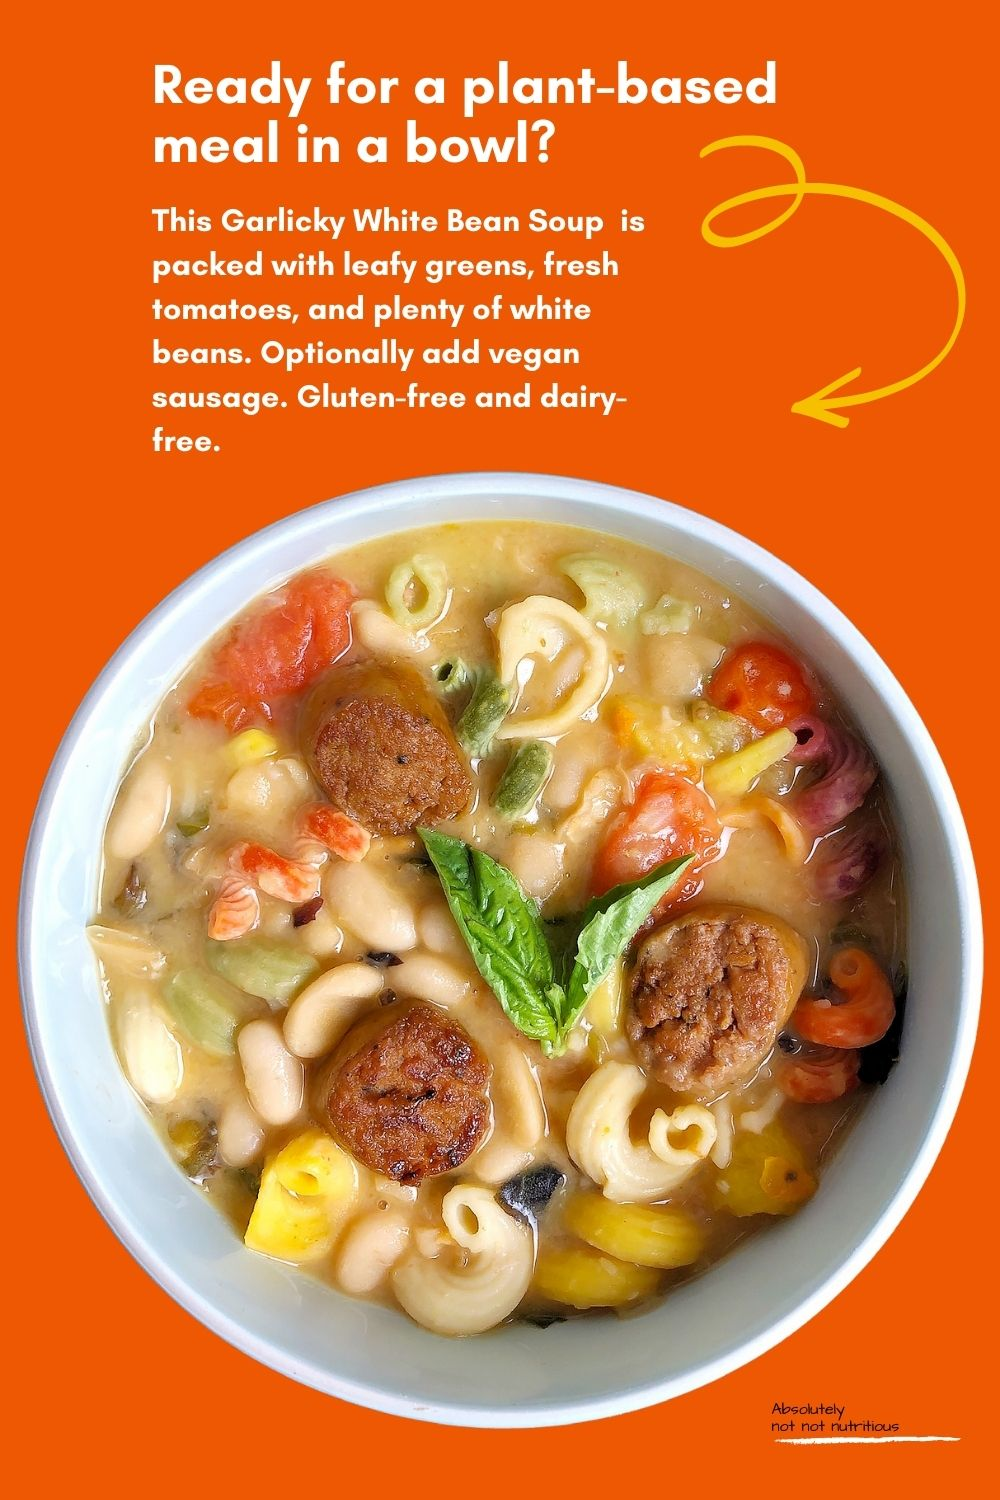 Top-down view of a soup bowl against a dark orange background. Soup is made from white beans, garlic, cherry tomatoes, leafy greens, pasta, and vegetable broth. Soup is garnished with a sprig of basil. Text on bottom right corner of image reads Absolutely not not nutritious